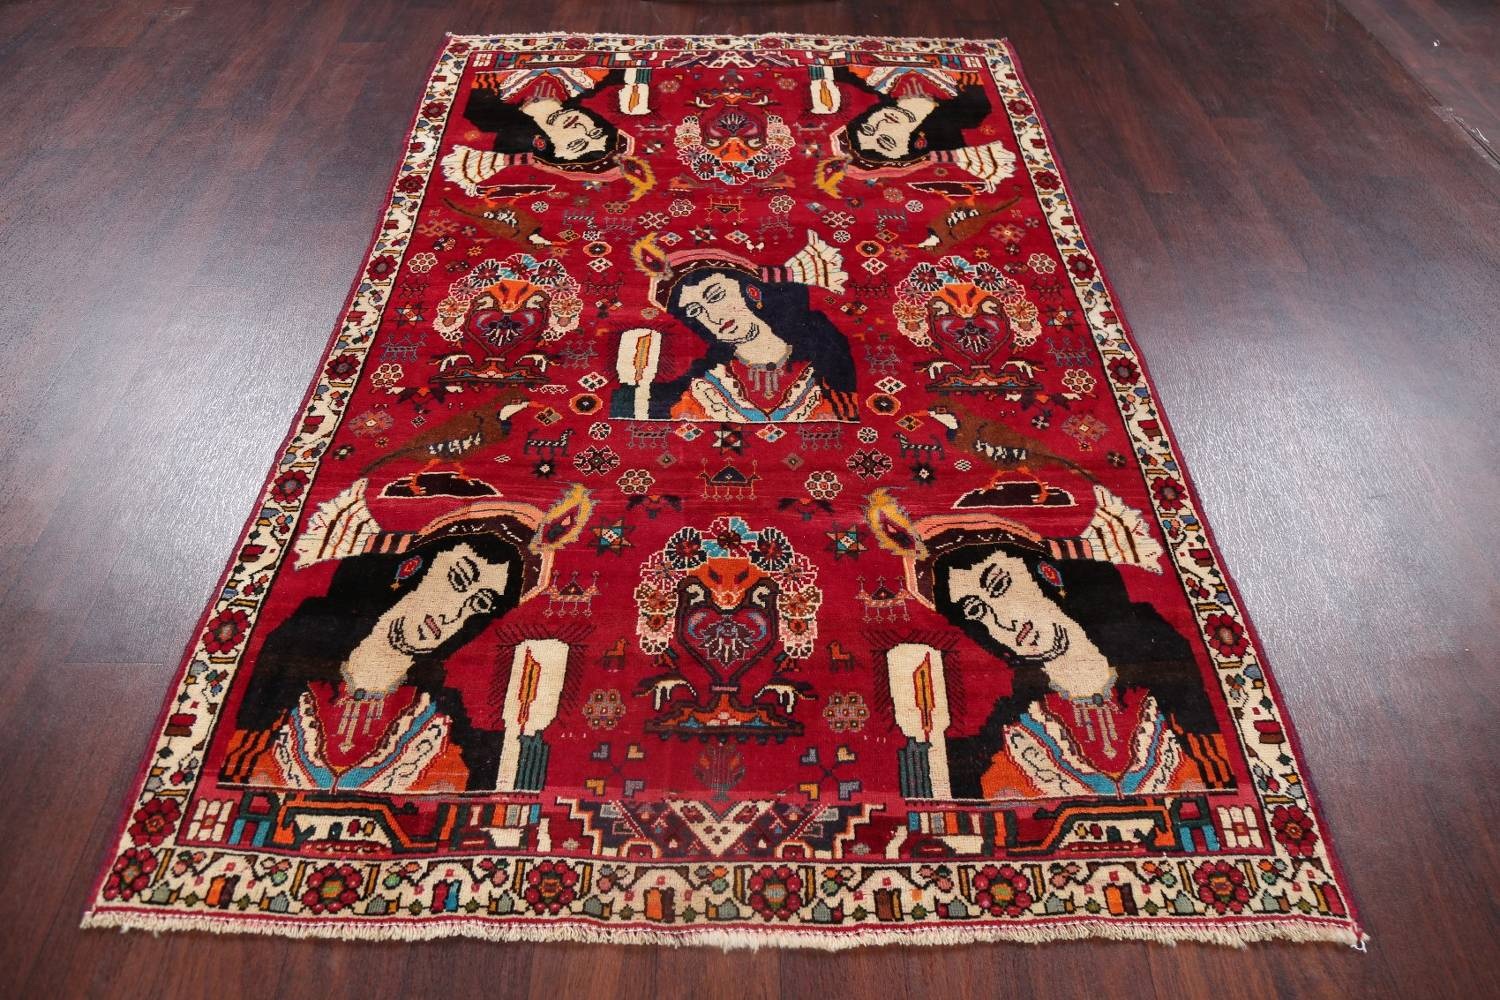 Vintage Red Pictorial Shiraz Persian Wool Rug 4x7 image 17